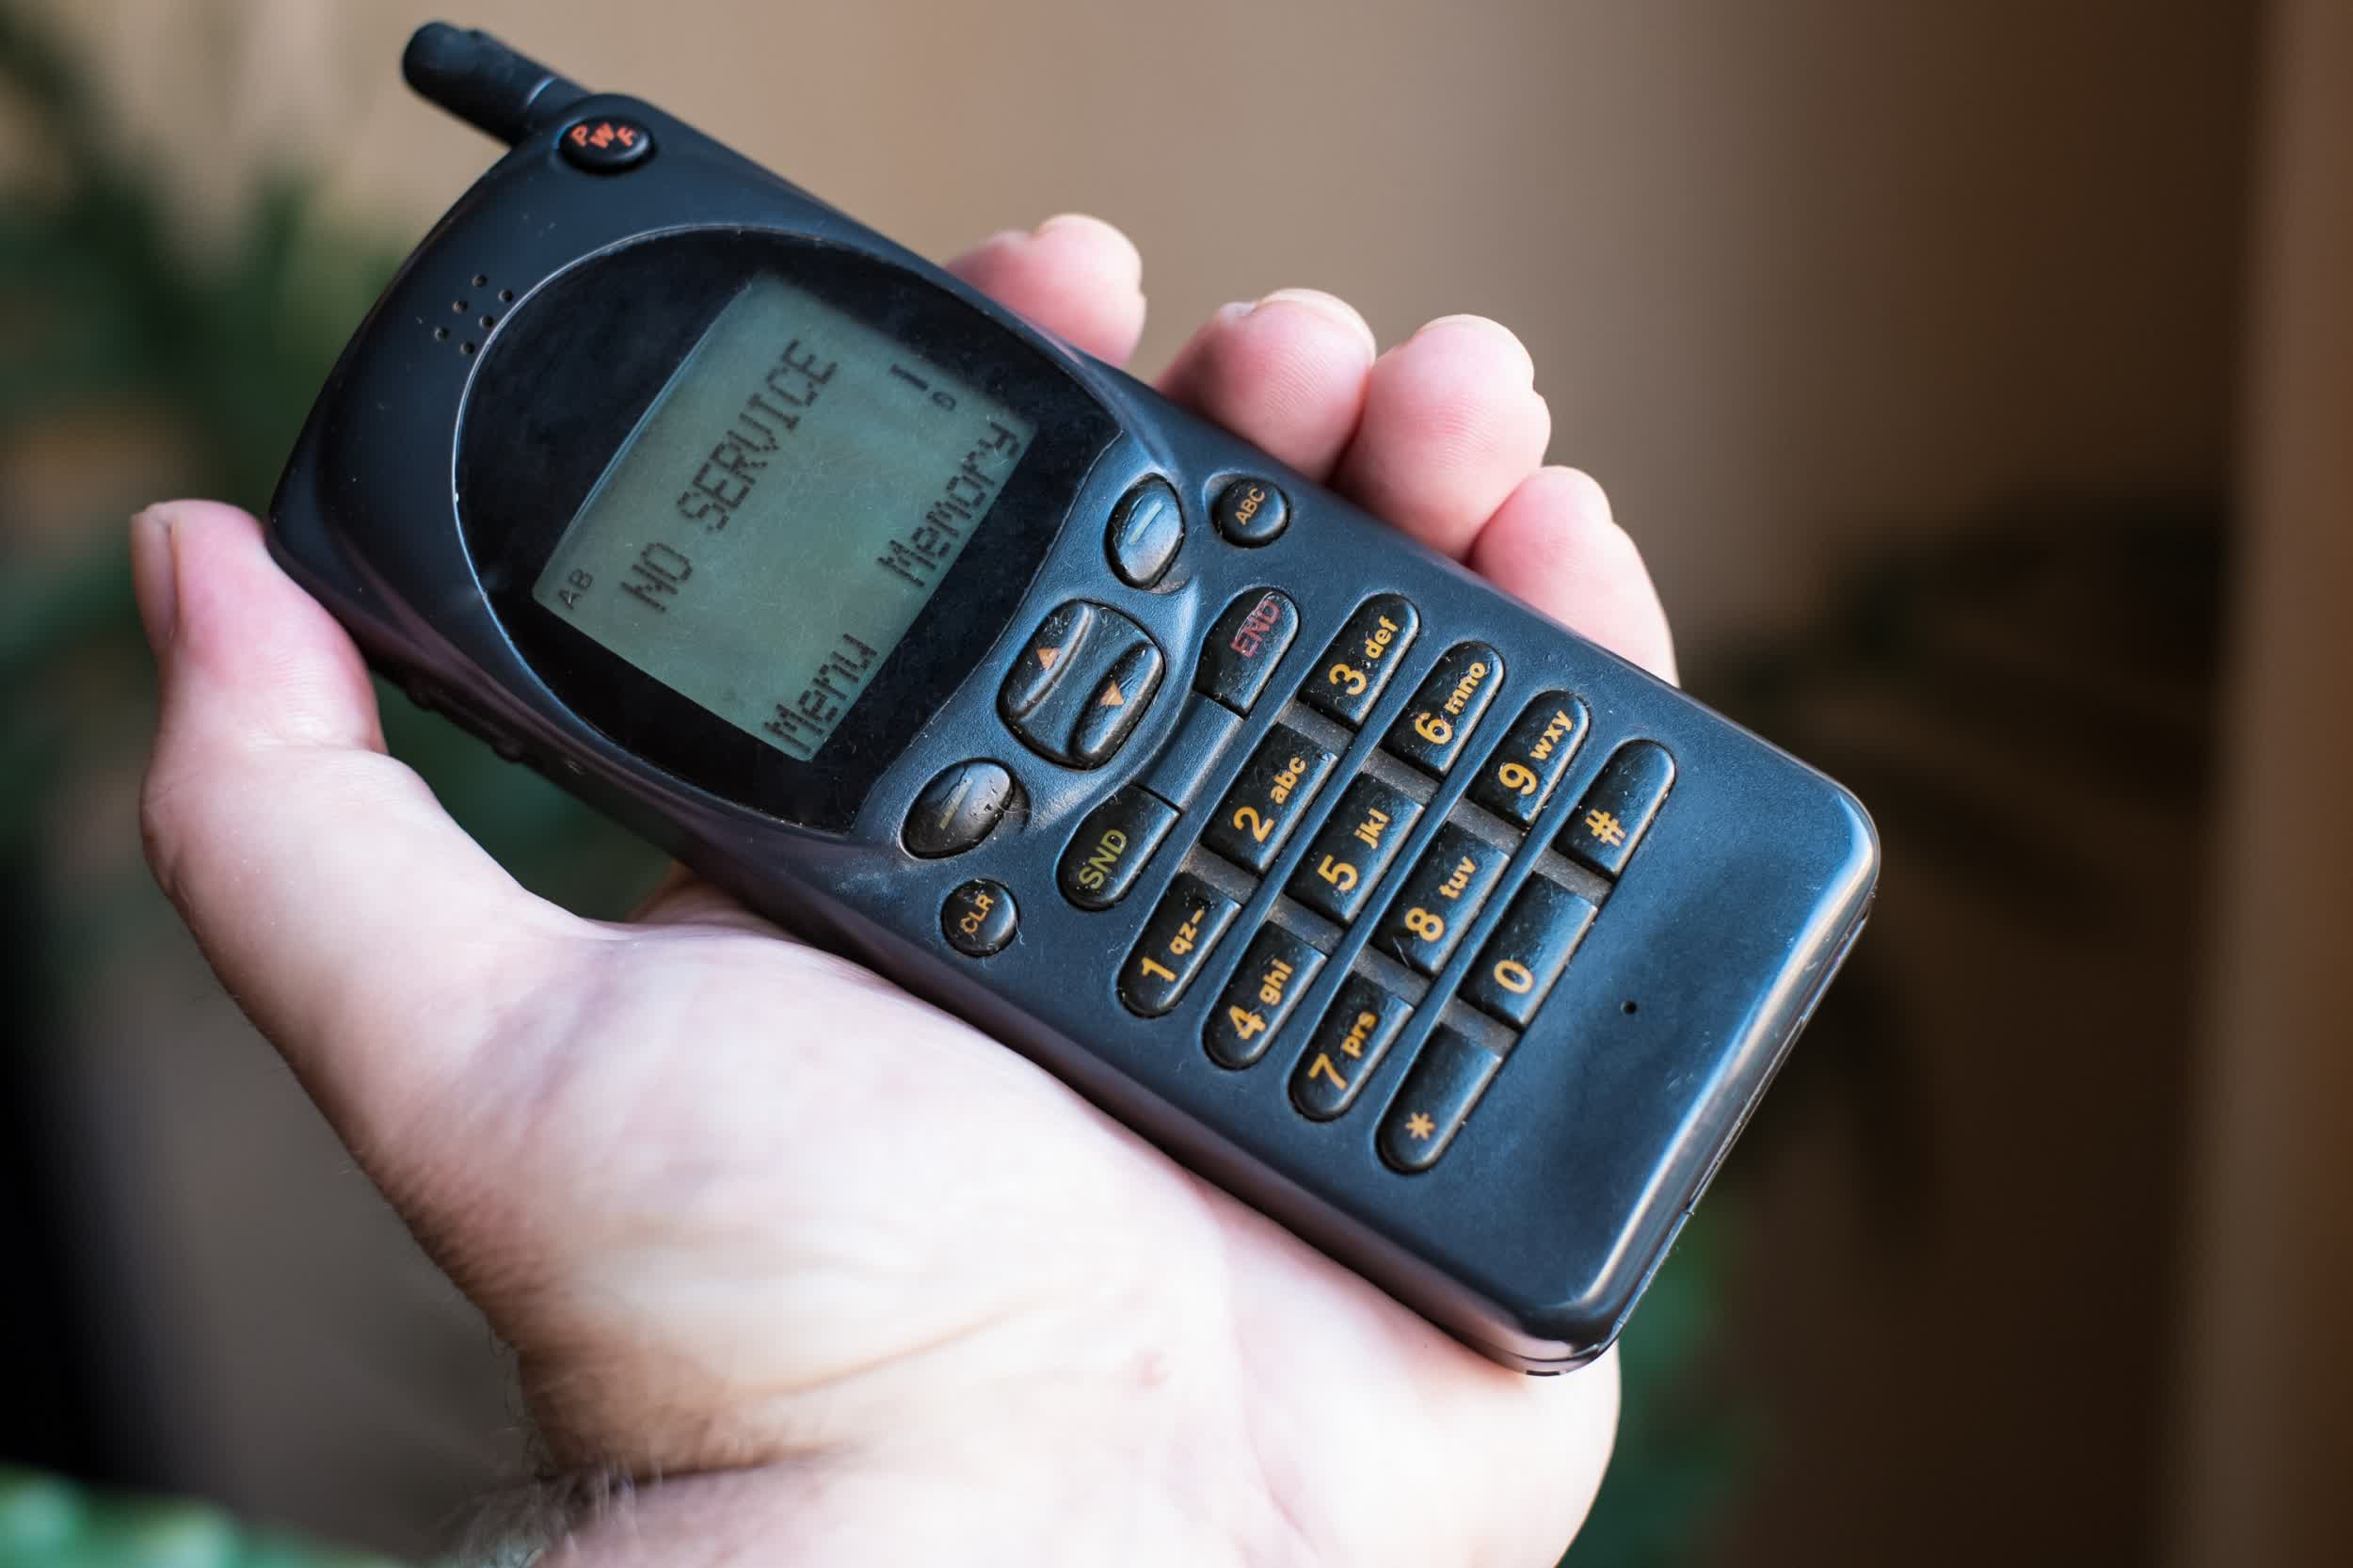 New report finds early cell phone encryption algorithm was intentionally weakened by design